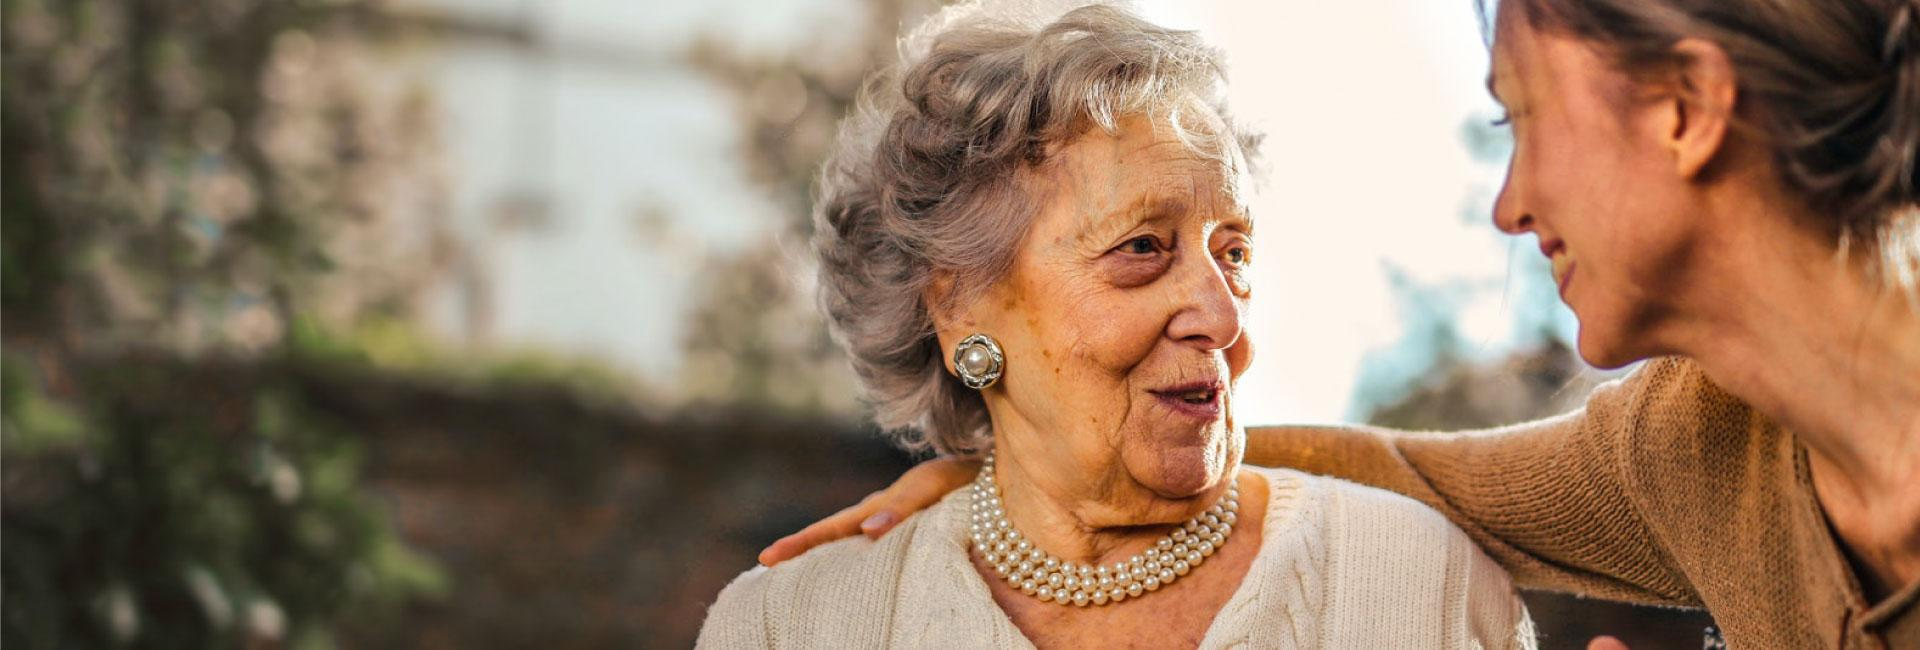 Older woman still lives at home with live-in care and support